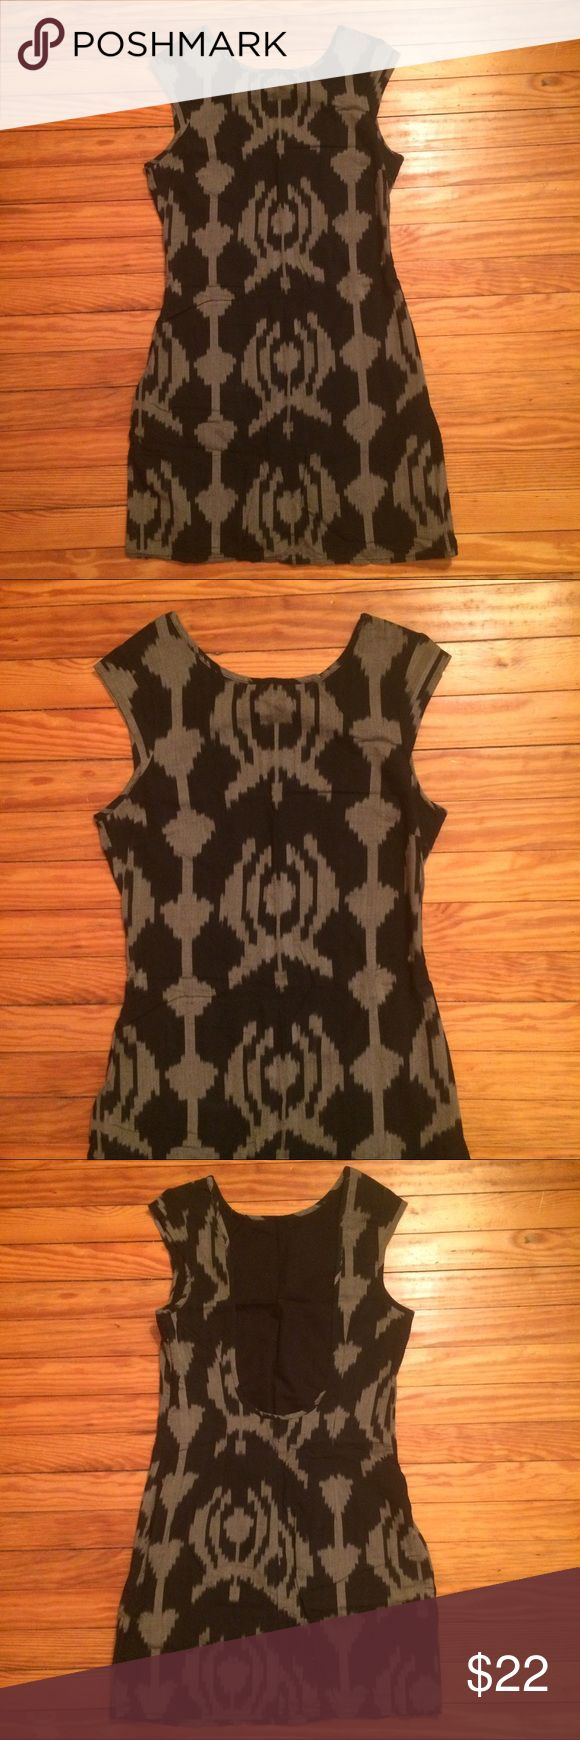 """Patterned mini dress Edgy ikat-printed cotton dress with low scoop back. Fitted shape with side zipper. Not stretchy. Black cotton lining. Never worn!  32"""" long 16"""" bust (flat) 14"""" waist (flat) 17"""" hips (flat) Urban Outfitters Dresses Mini"""